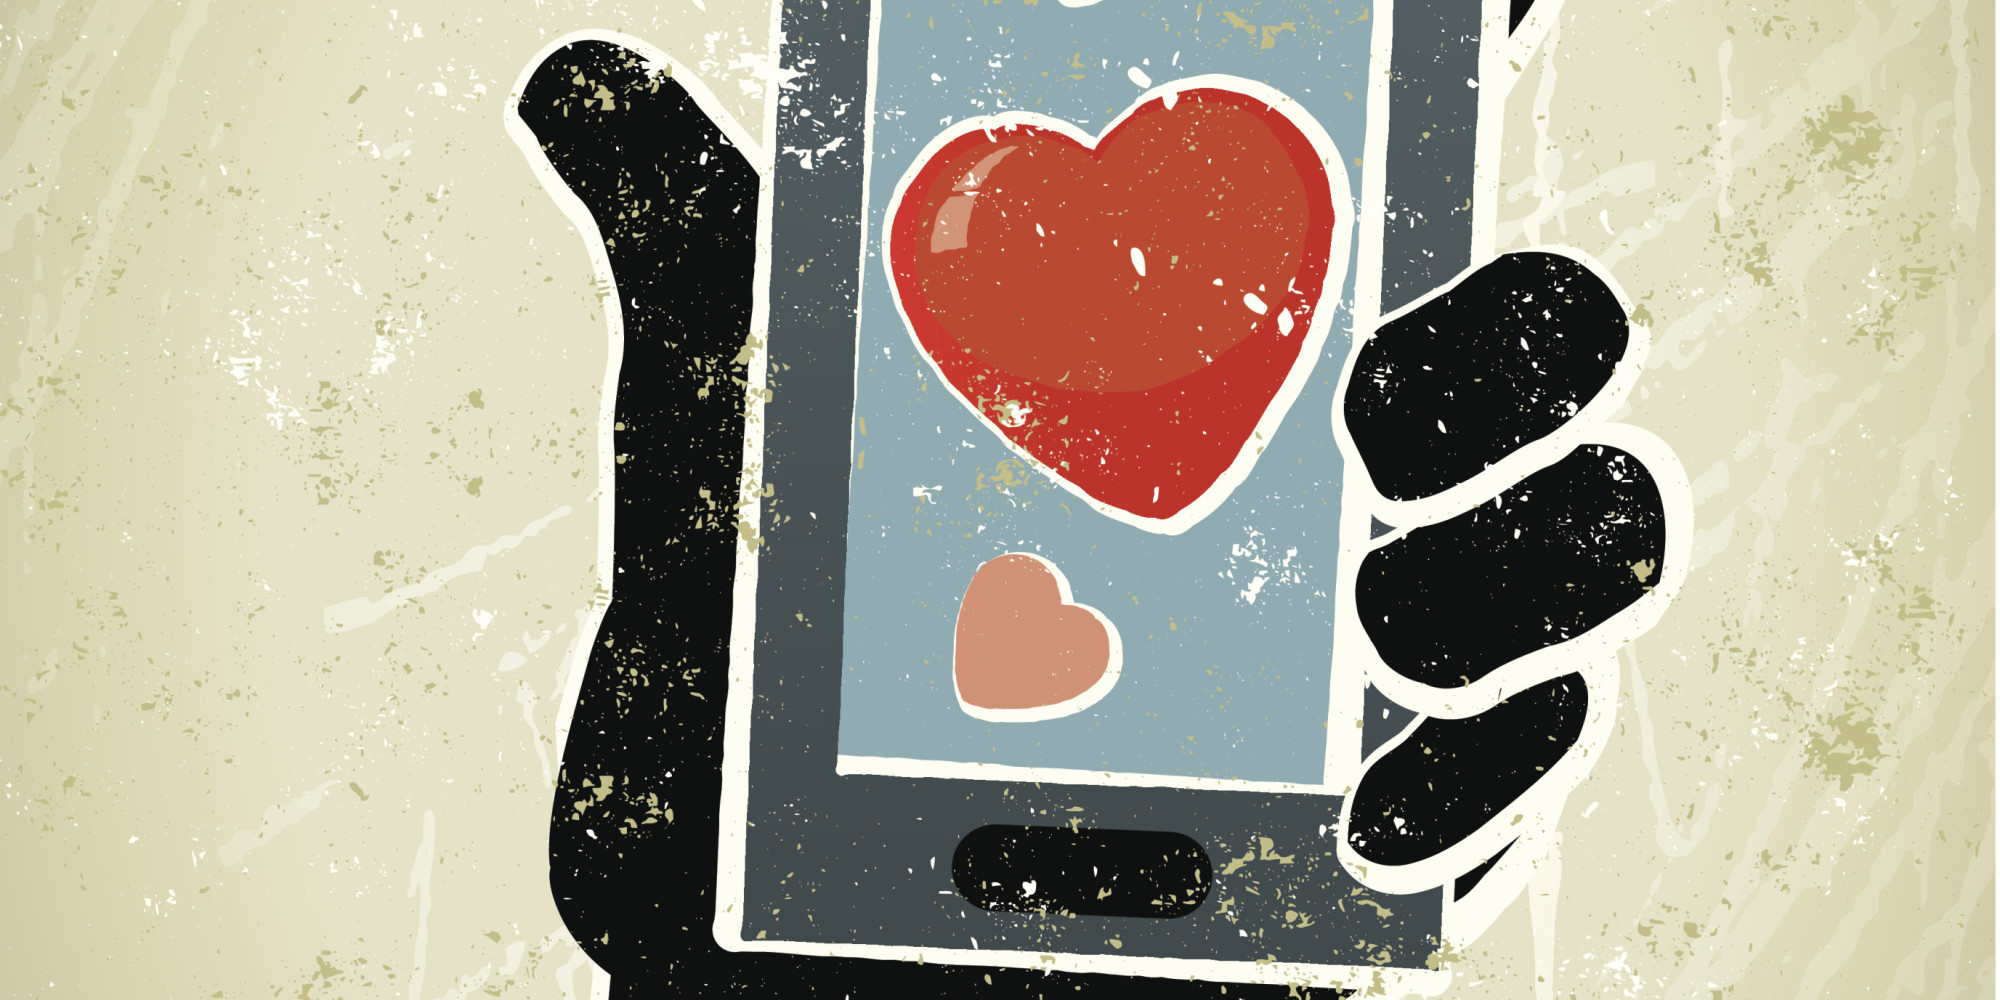 the online dating Looking to find love online this year you might need to look elsewhere the studies are in and black women come near the bottom of the pile when it comes to finding love on mainstream dating sites most daters on mainstream sites like okcupid, tinder and matchcom are white and the statistics say.